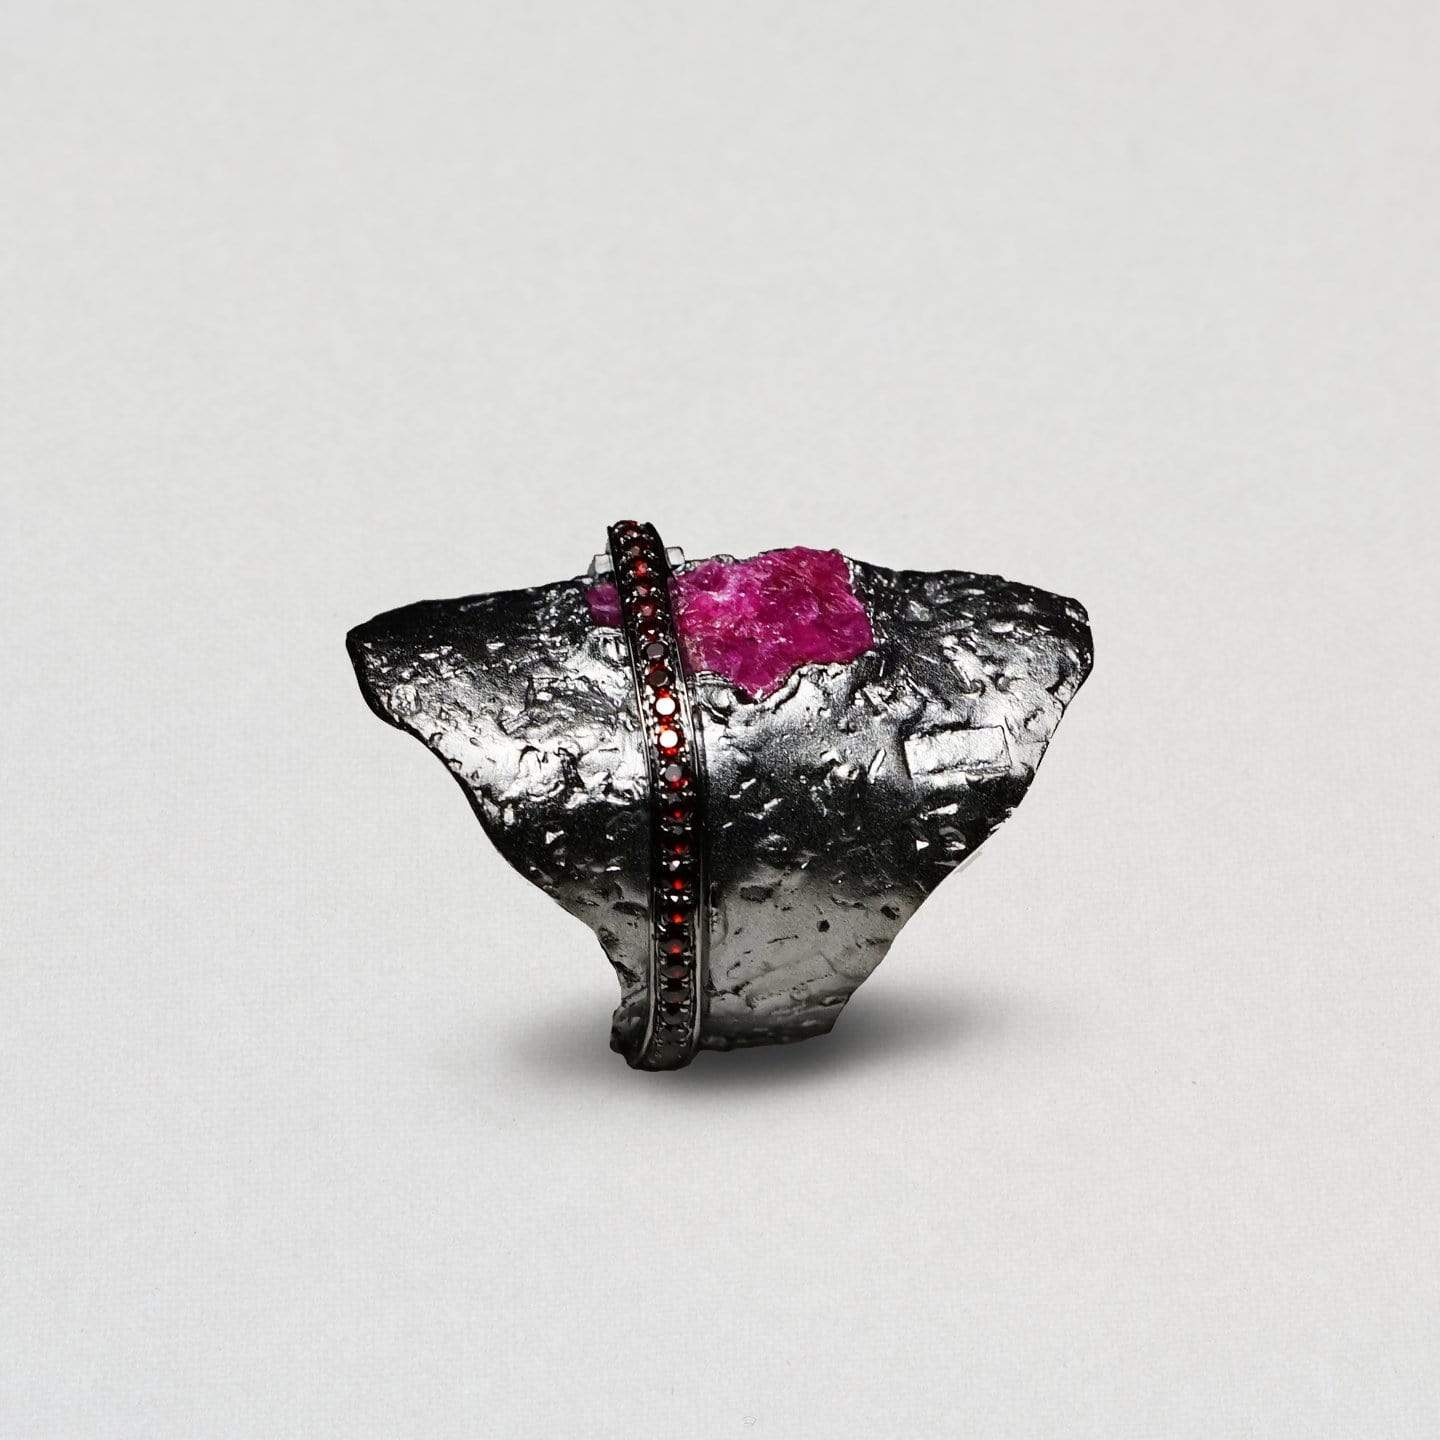 Varuna Ring, Exclusive, Garnet, gray, Rhodium, Ruby, spo-disabled, StoneColor:PinkRuby, Style:Everyday, Type:StoneCandyScattered Ring